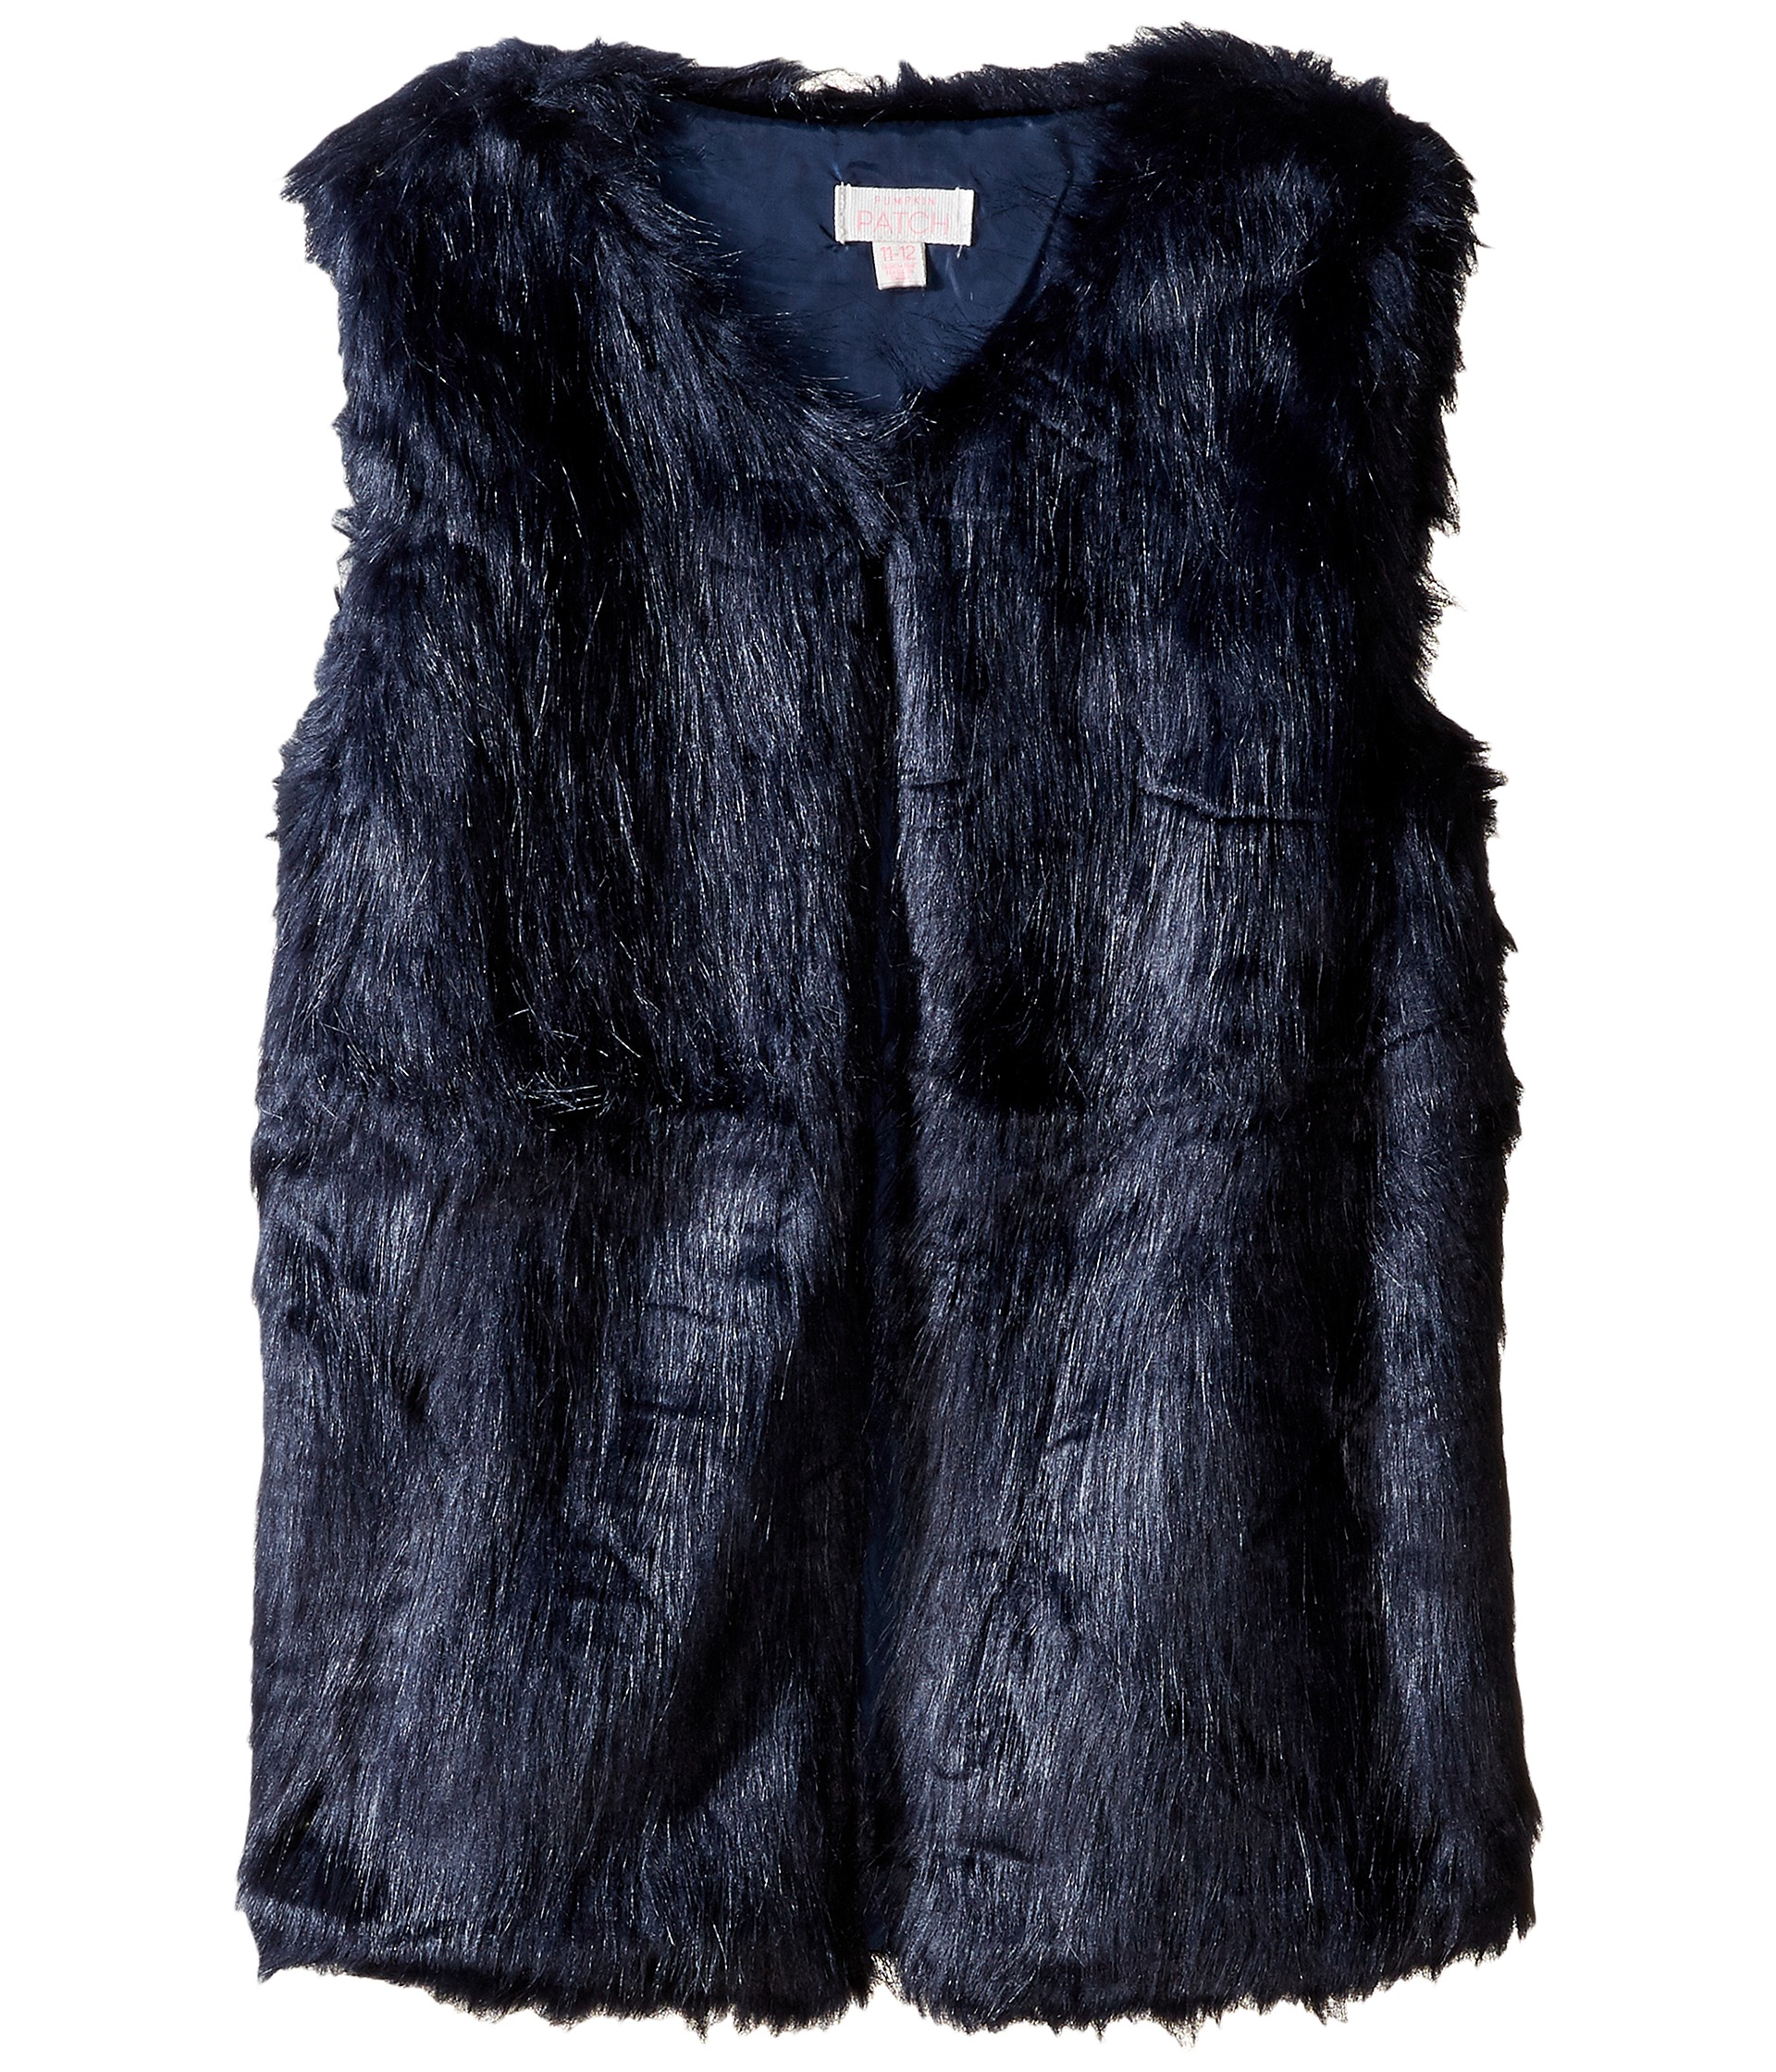 Shop for girls fur vests online at Target. Free shipping on purchases over $35 and save 5% every day with your Target REDcard.